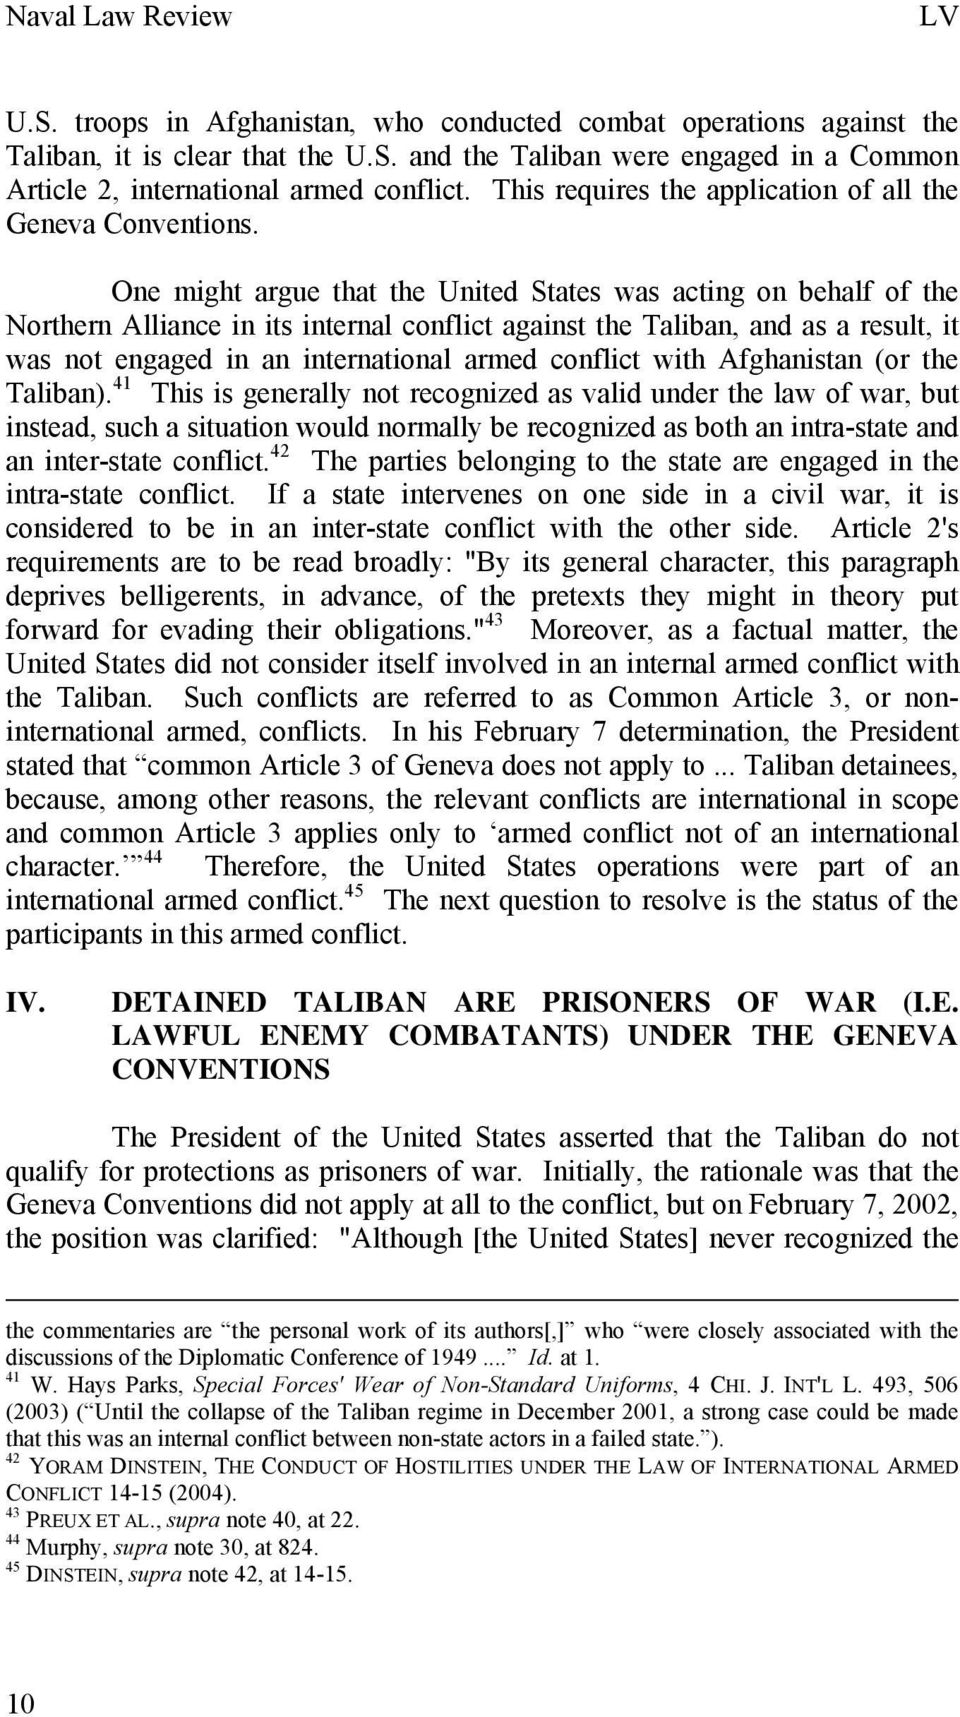 One might argue that the United States was acting on behalf of the Northern Alliance in its internal conflict against the Taliban, and as a result, it was not engaged in an international armed